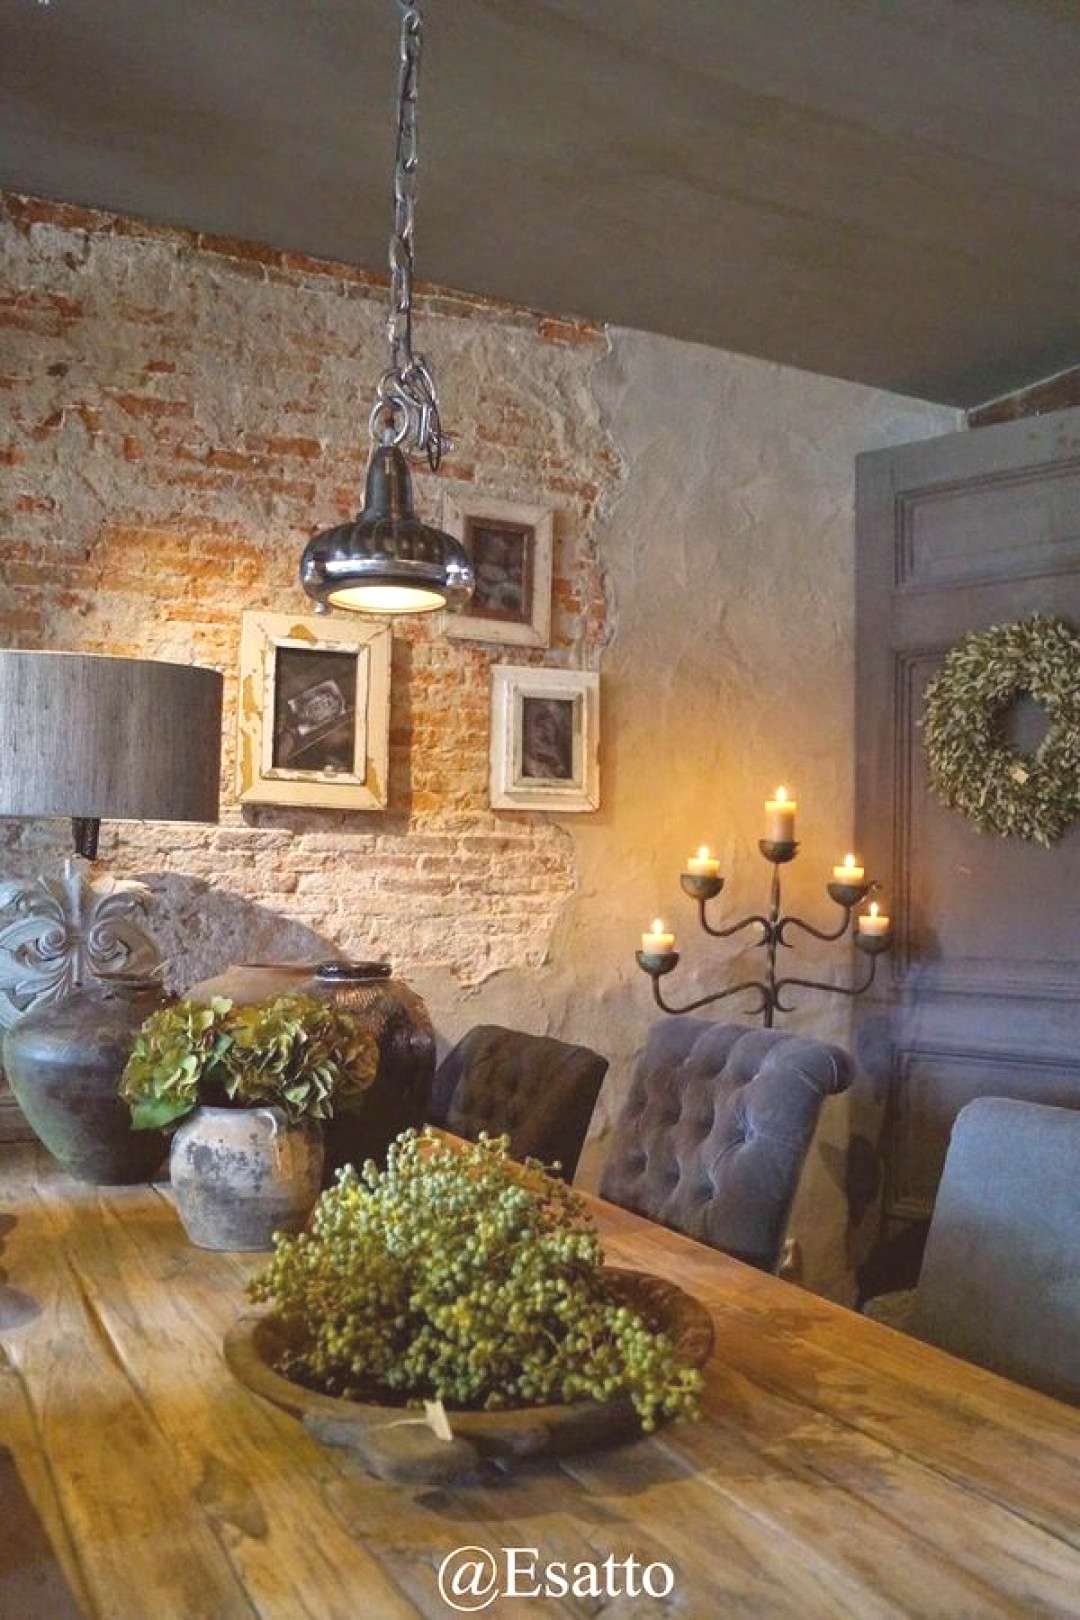 Take a look at this amazing home interior design trends  